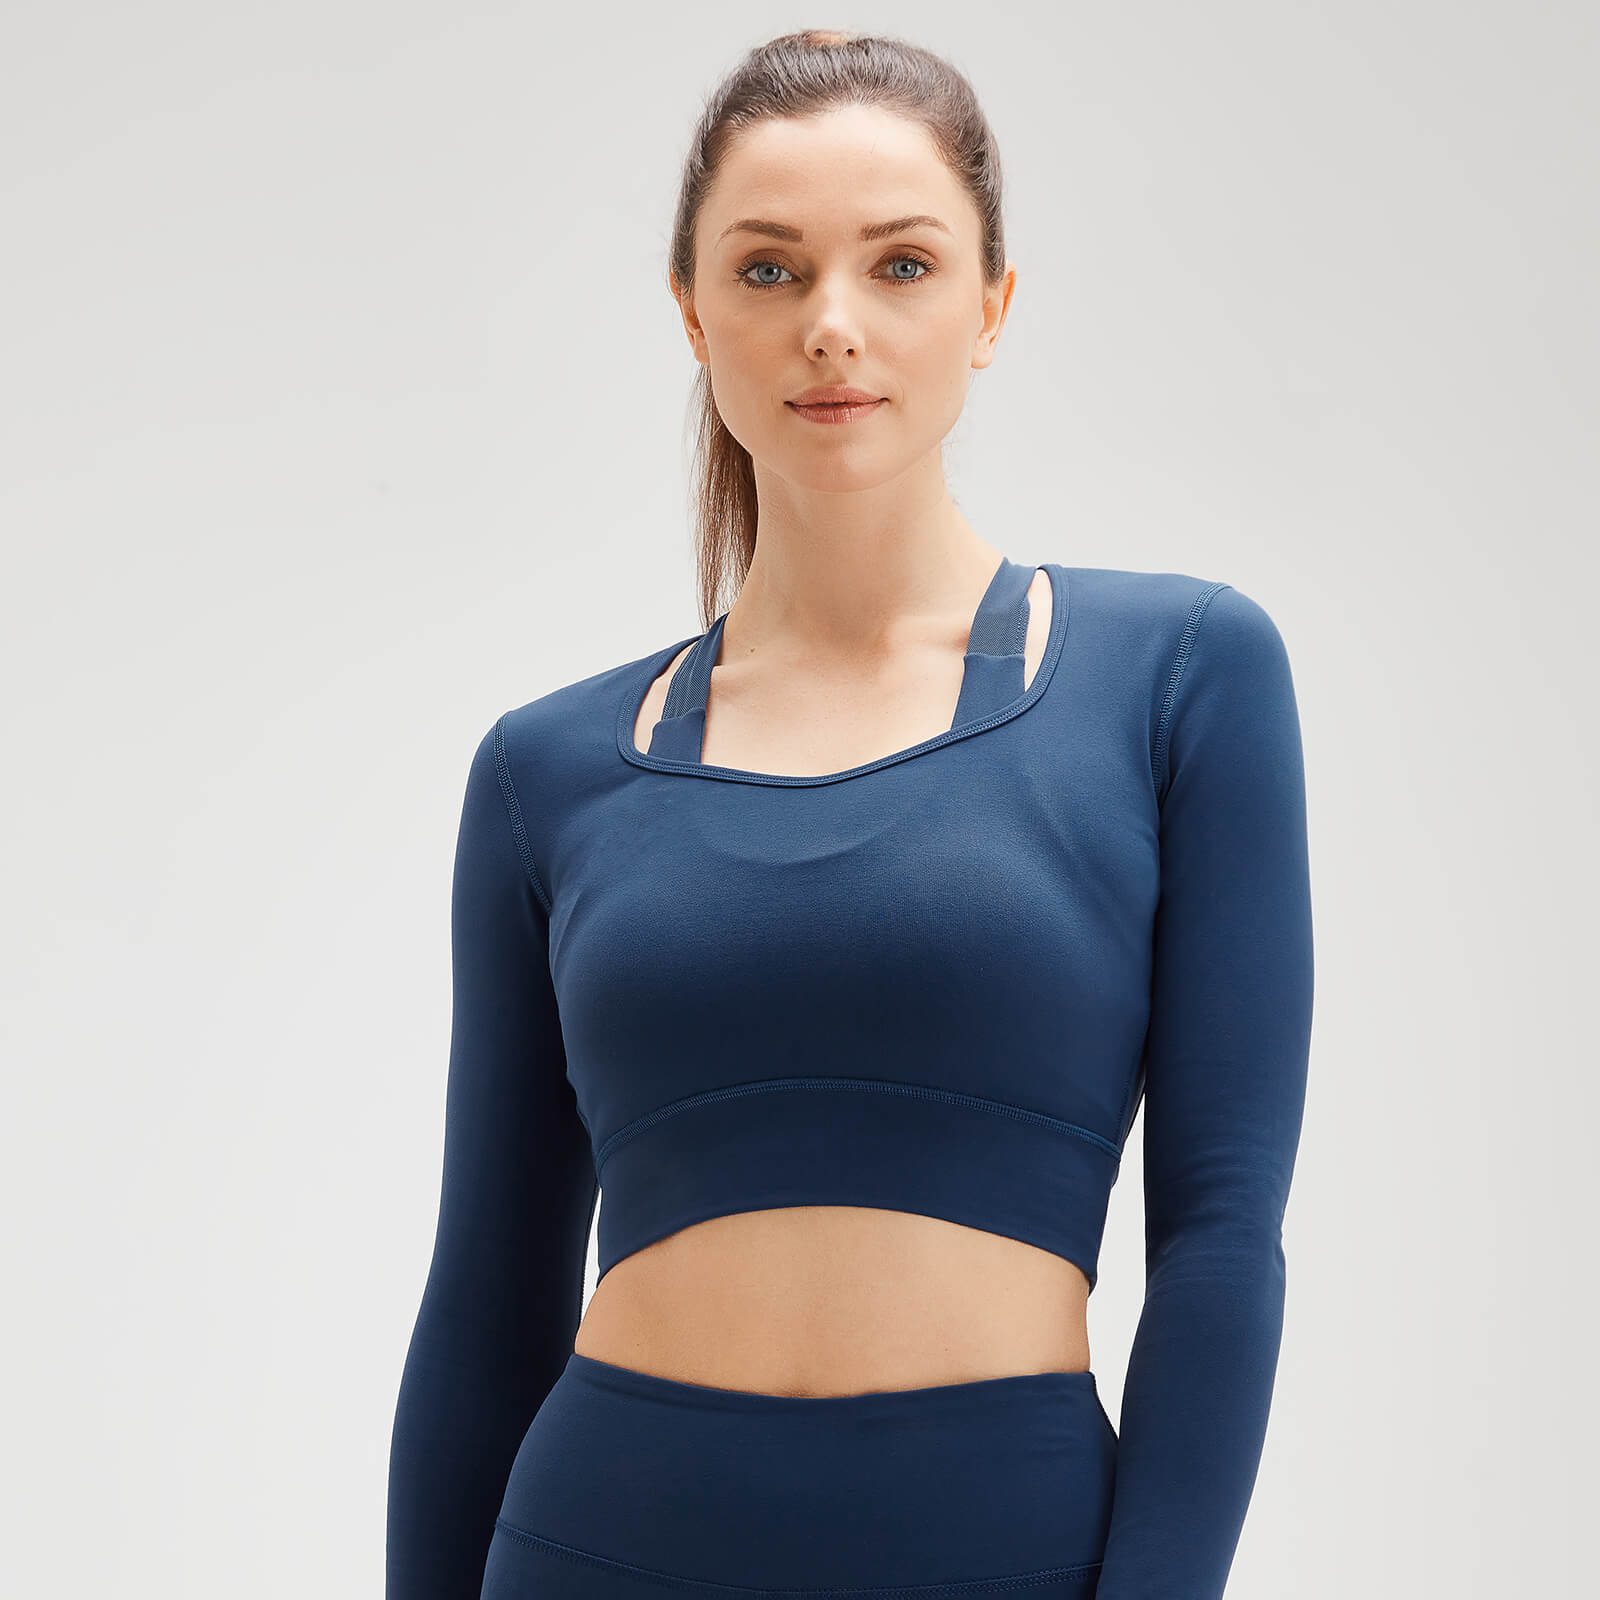 MP Women's Power Open Back Crop Top - Dark Blue - XXL